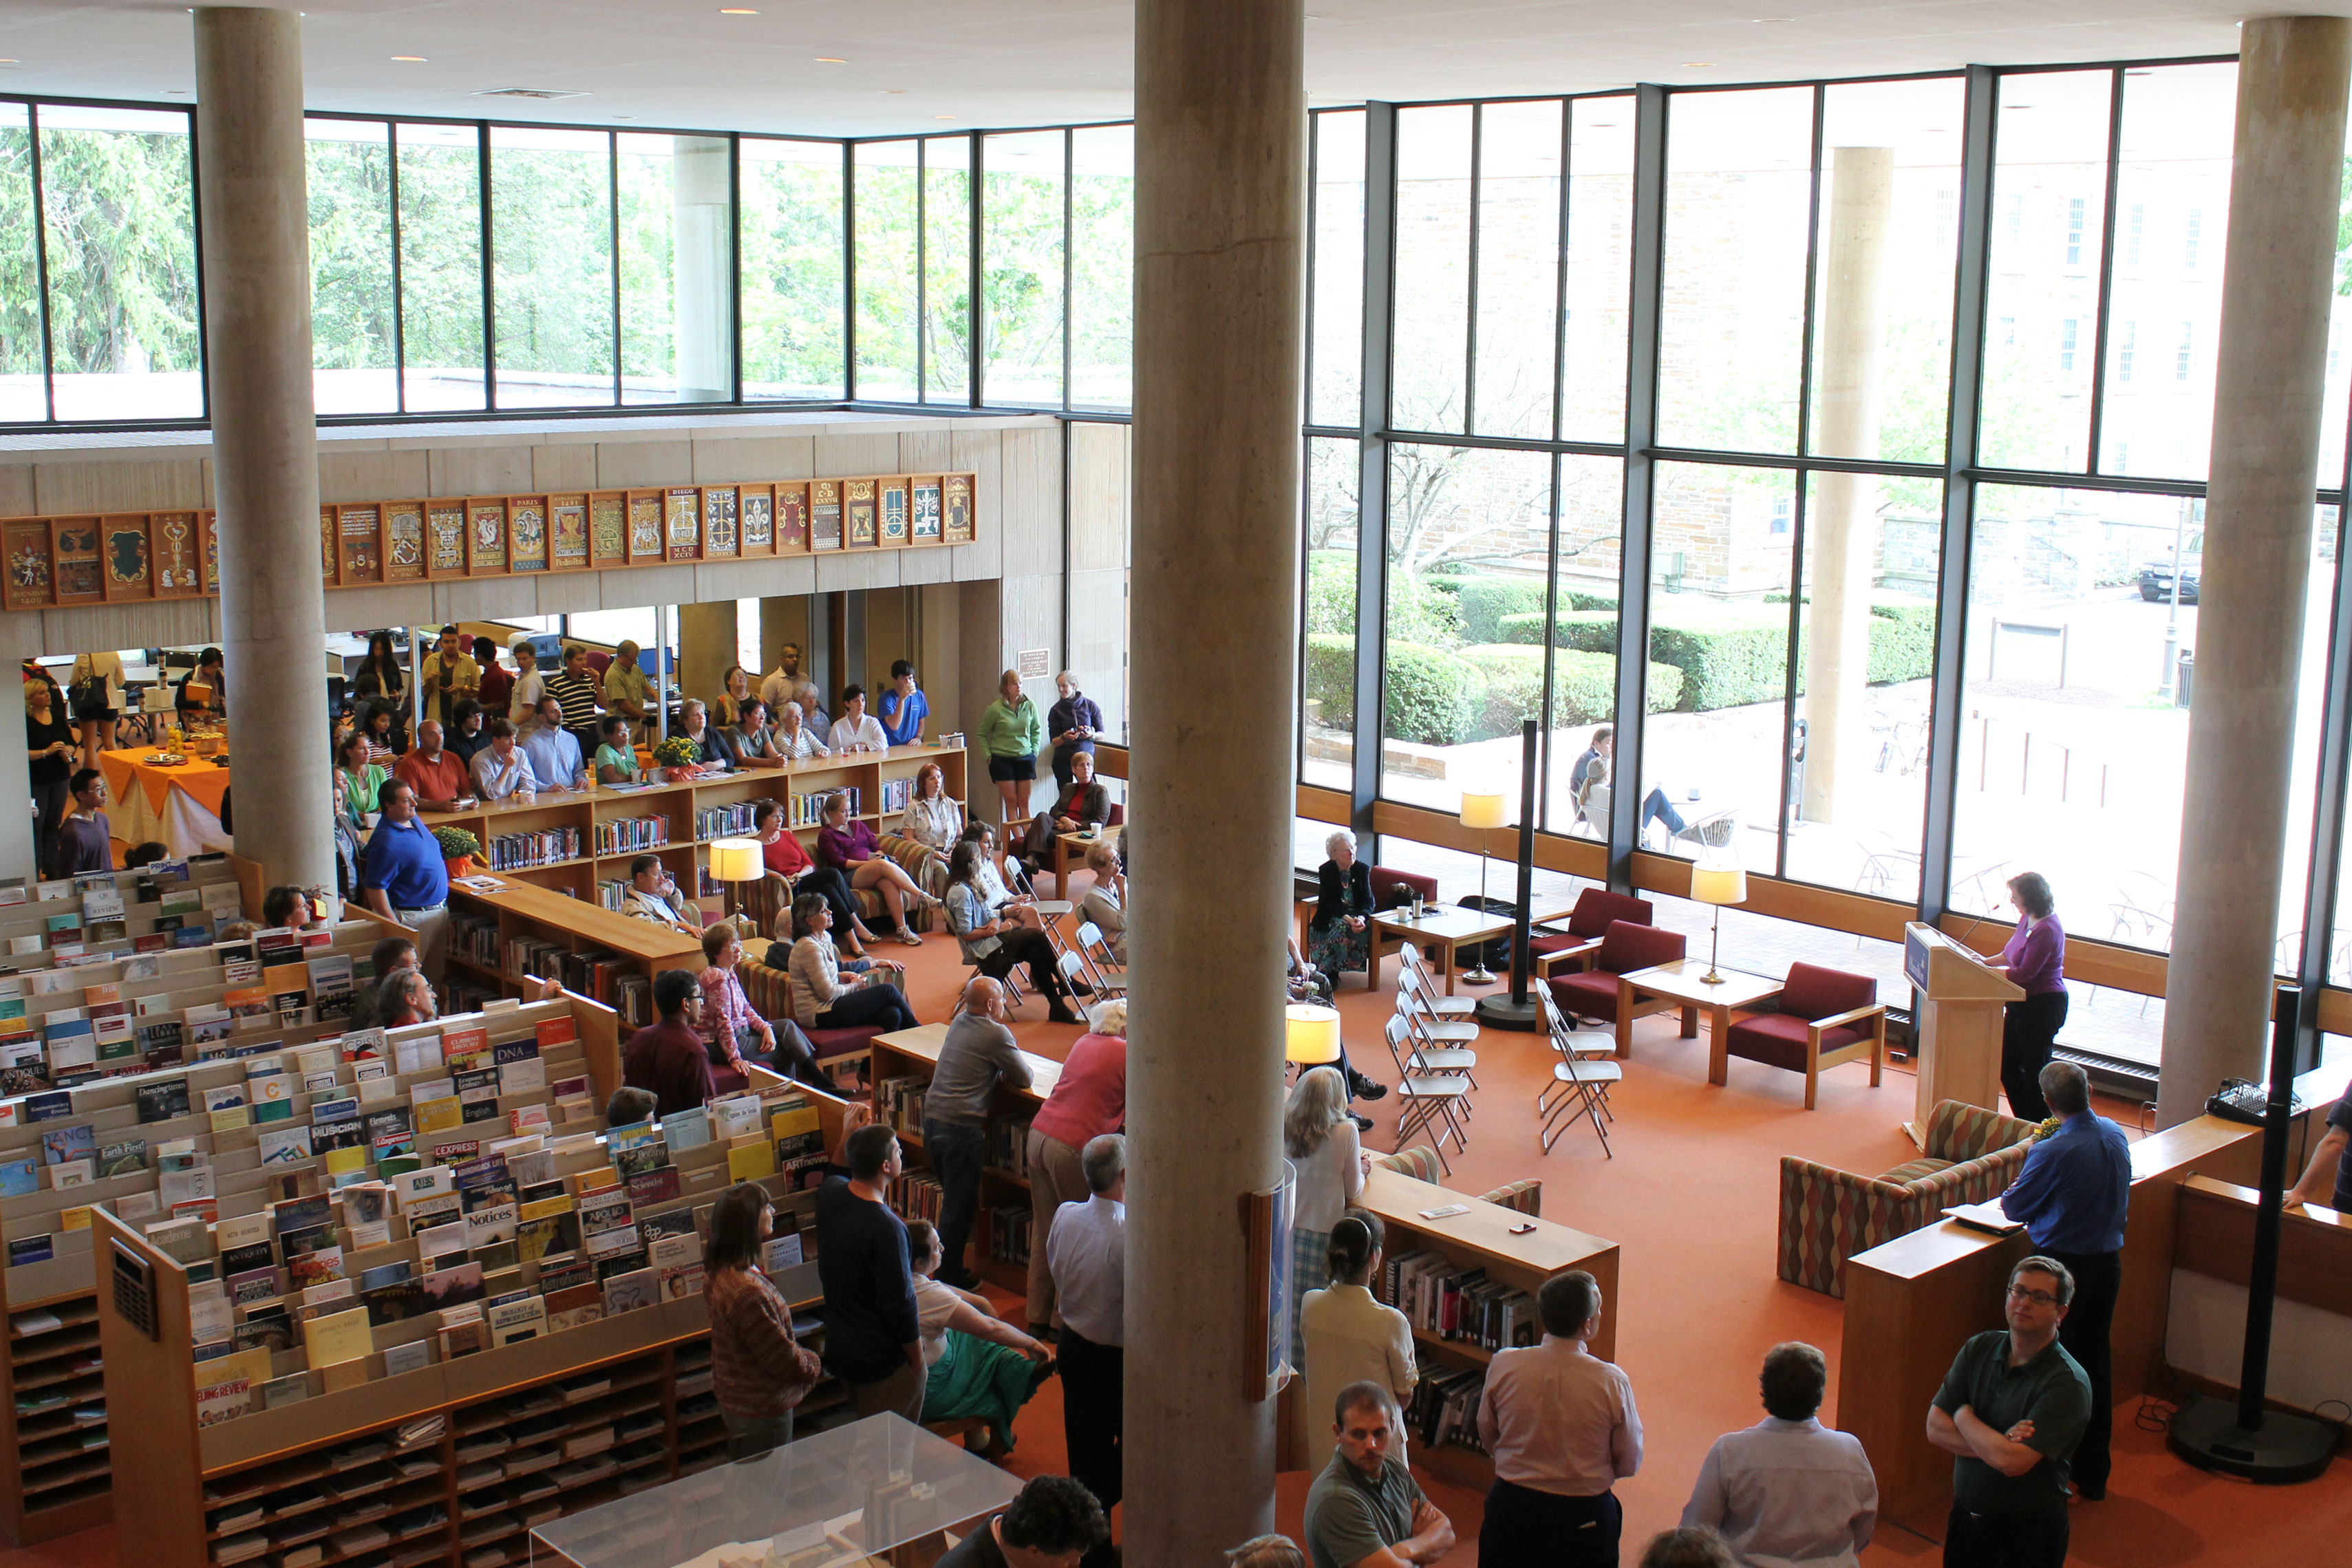 Burke Library hosted a celebration on Sept. 10 to commemorate its 40th birthday.